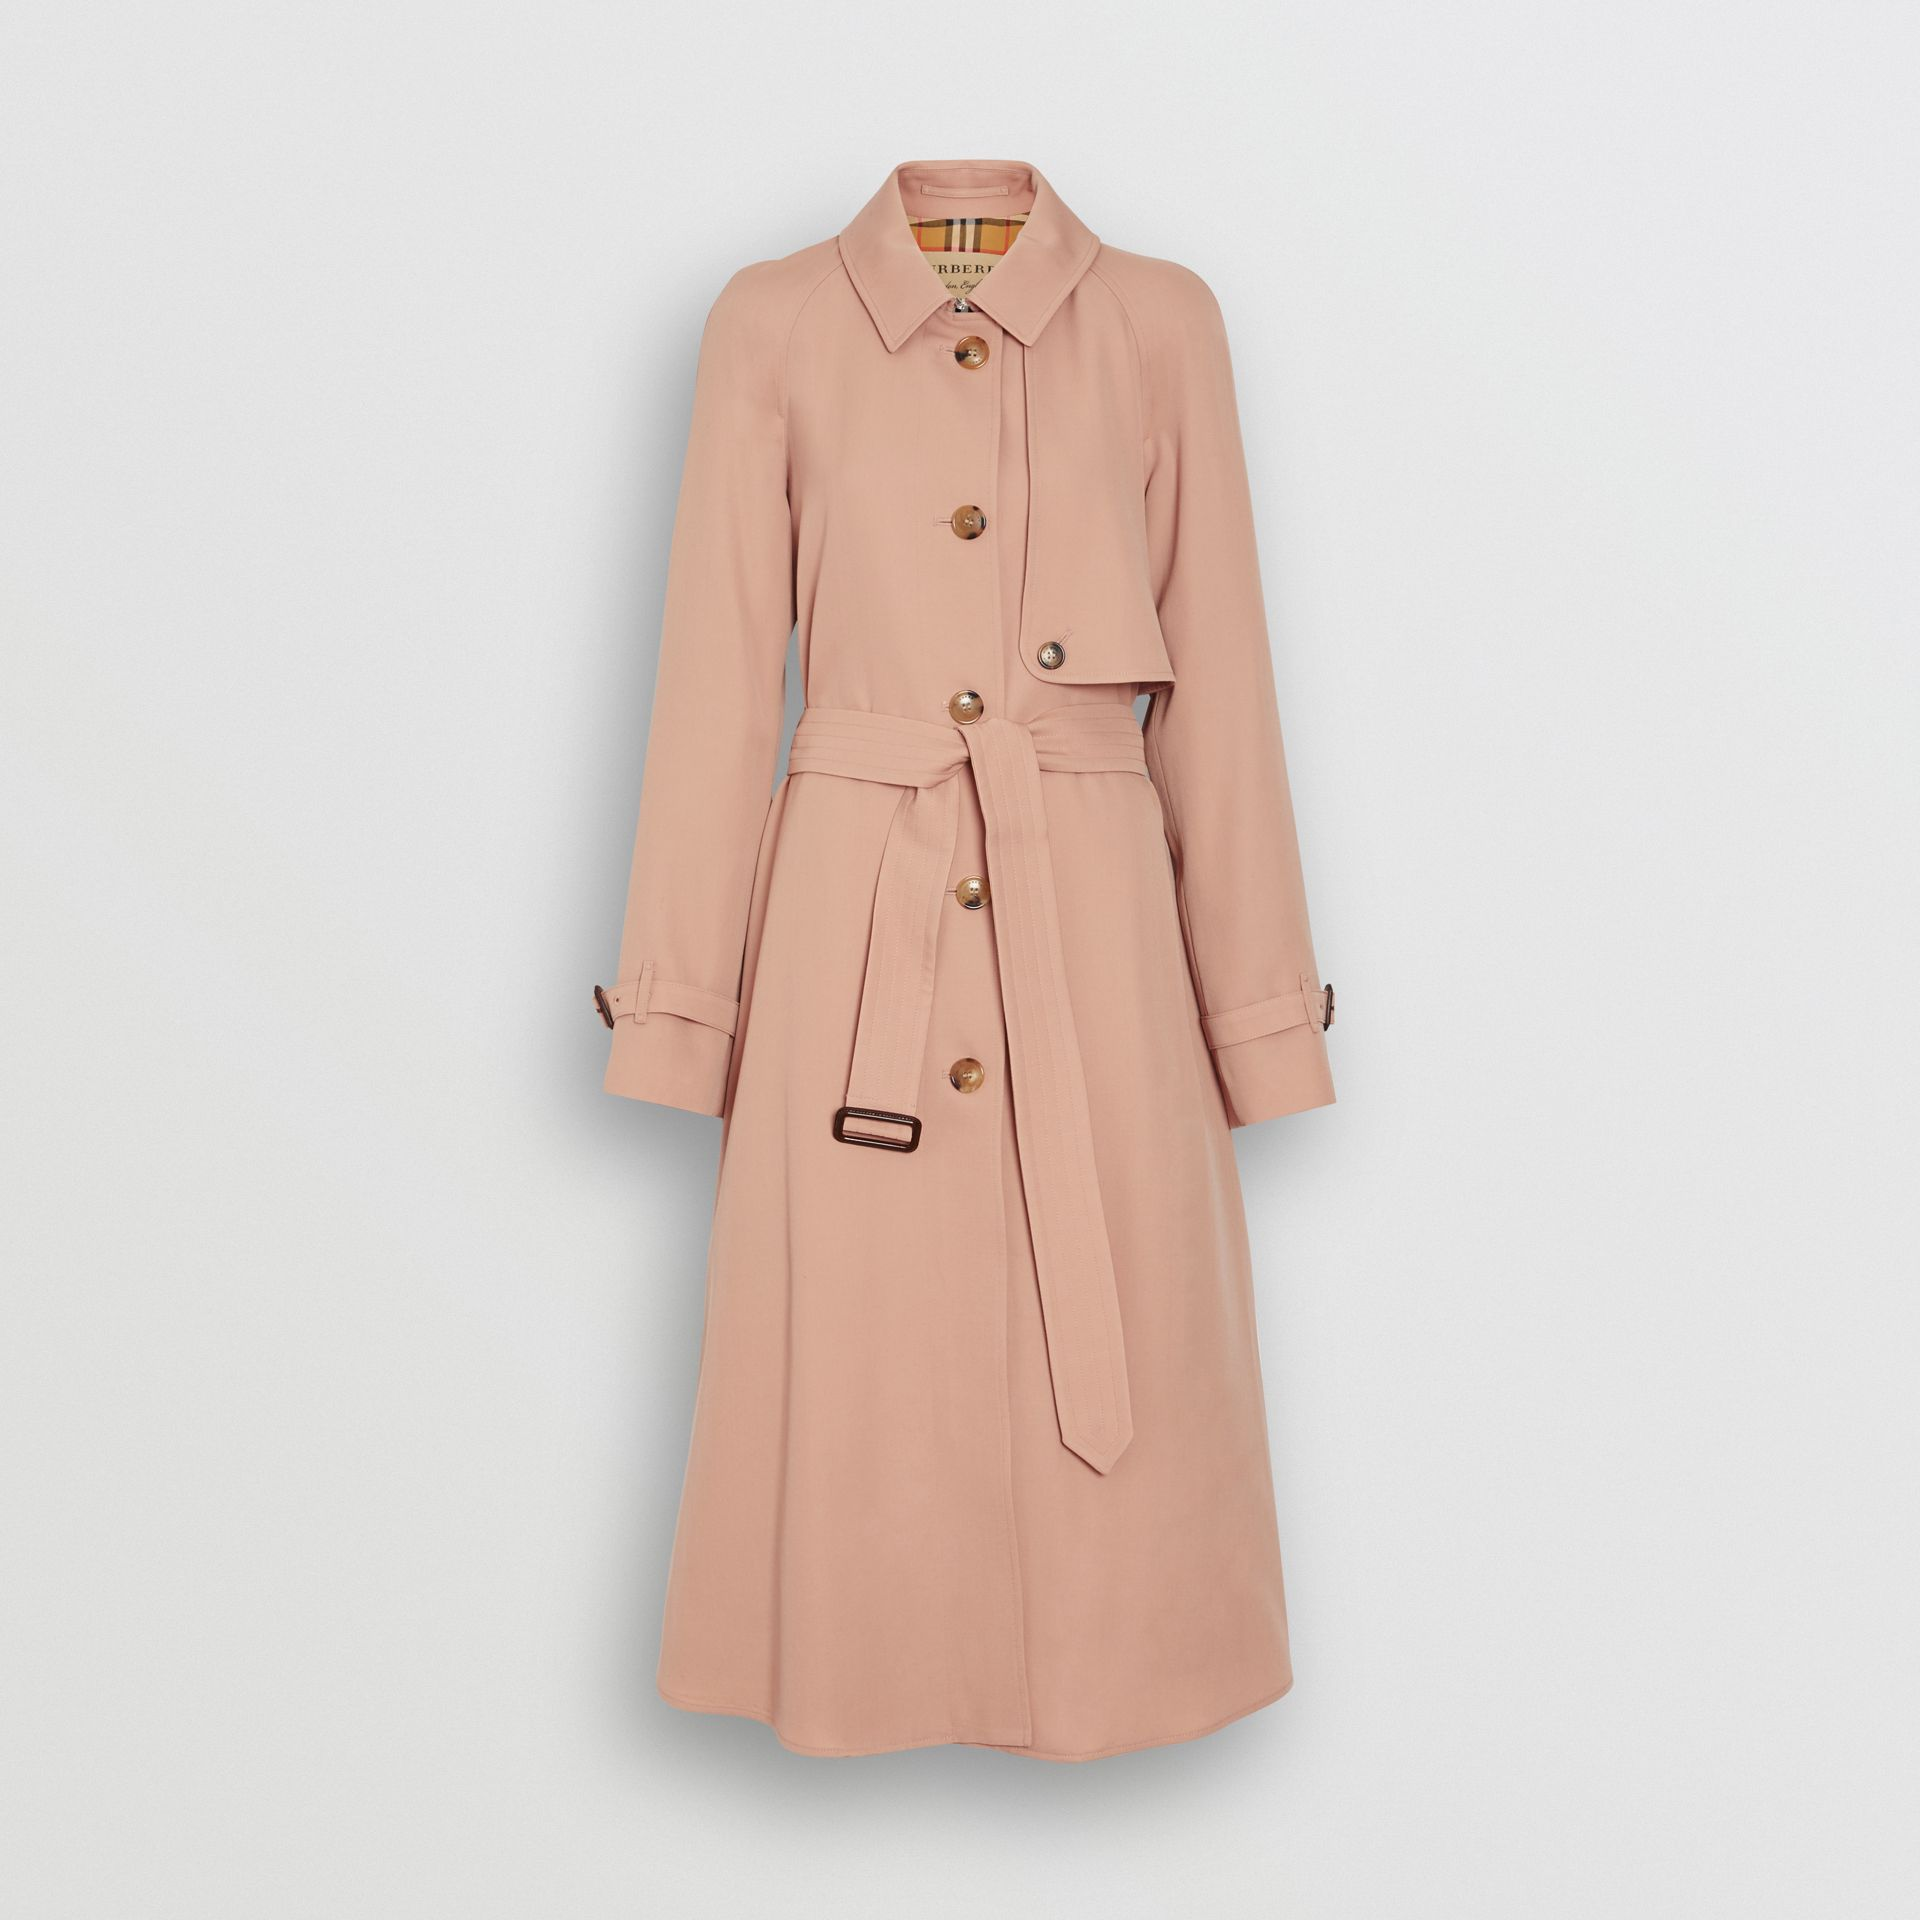 Wool Gabardine Trench Coat in Blush Pink - Women | Burberry United States - gallery image 3